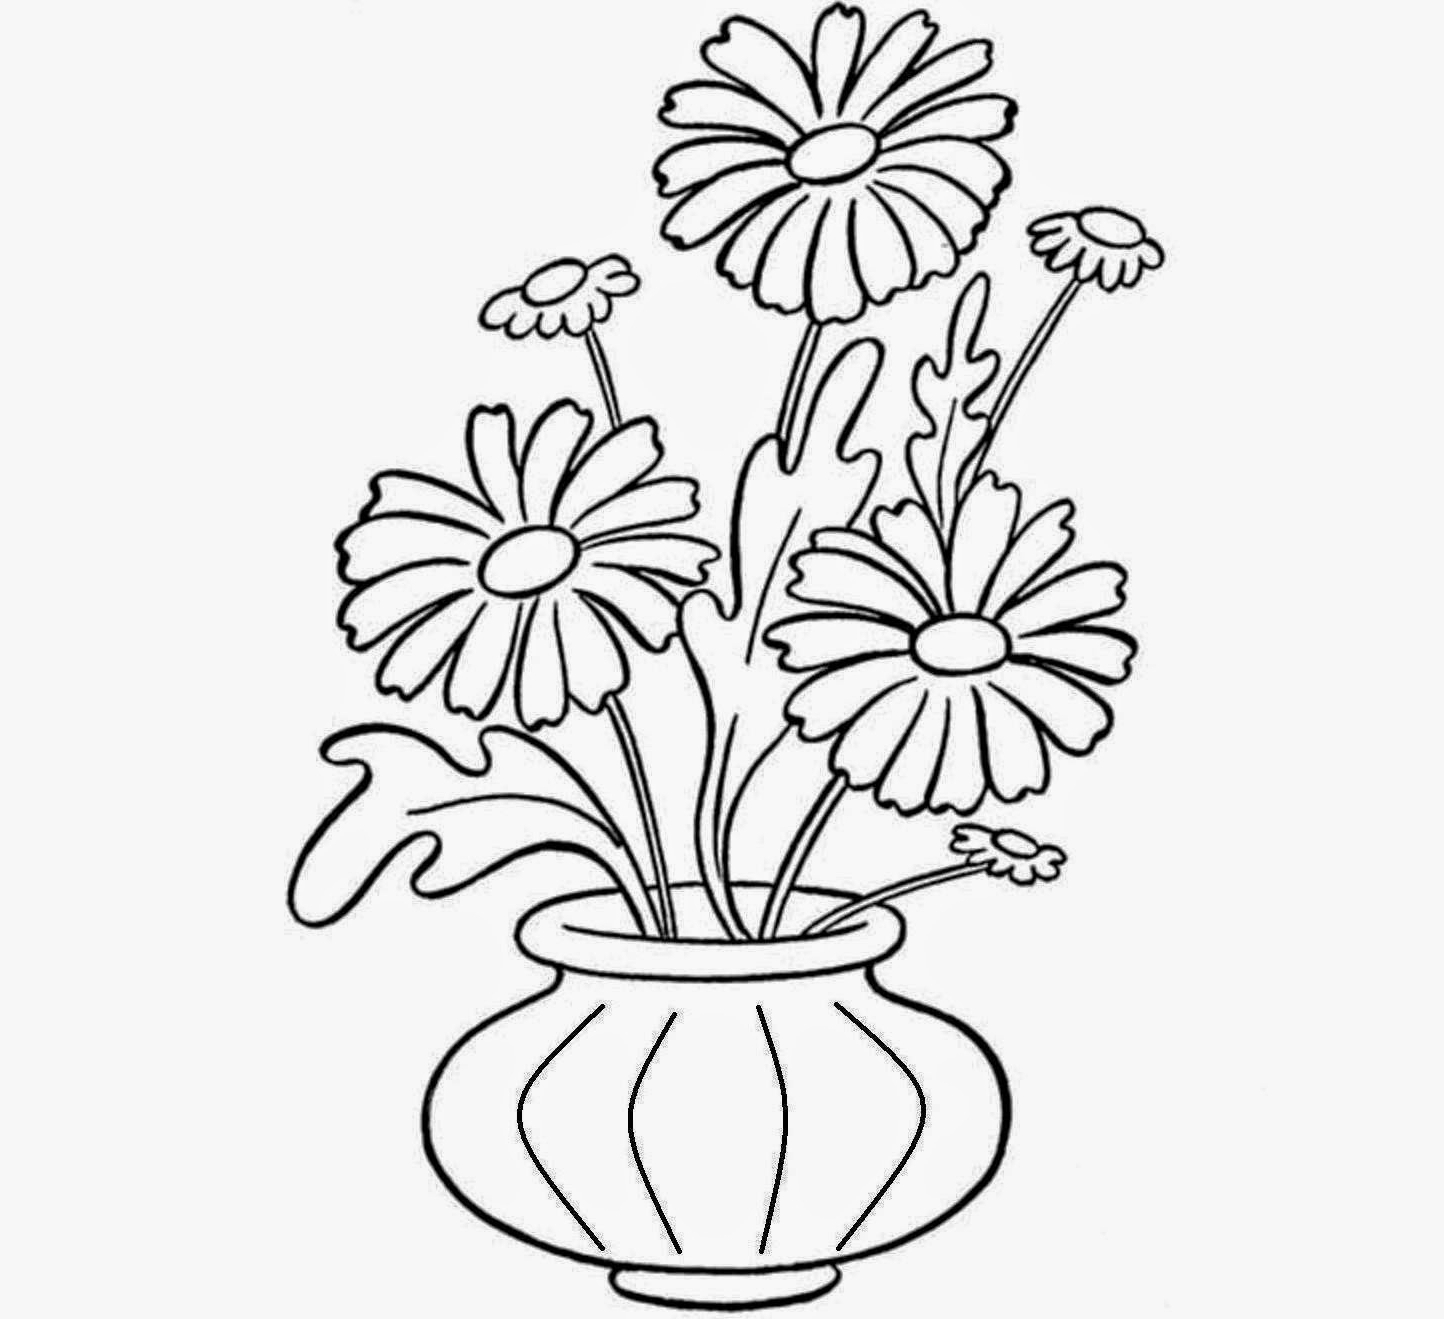 1444x1319 Easy Flower Pot Drawing Cool Drawings To Flowerpot Draw In Pencil